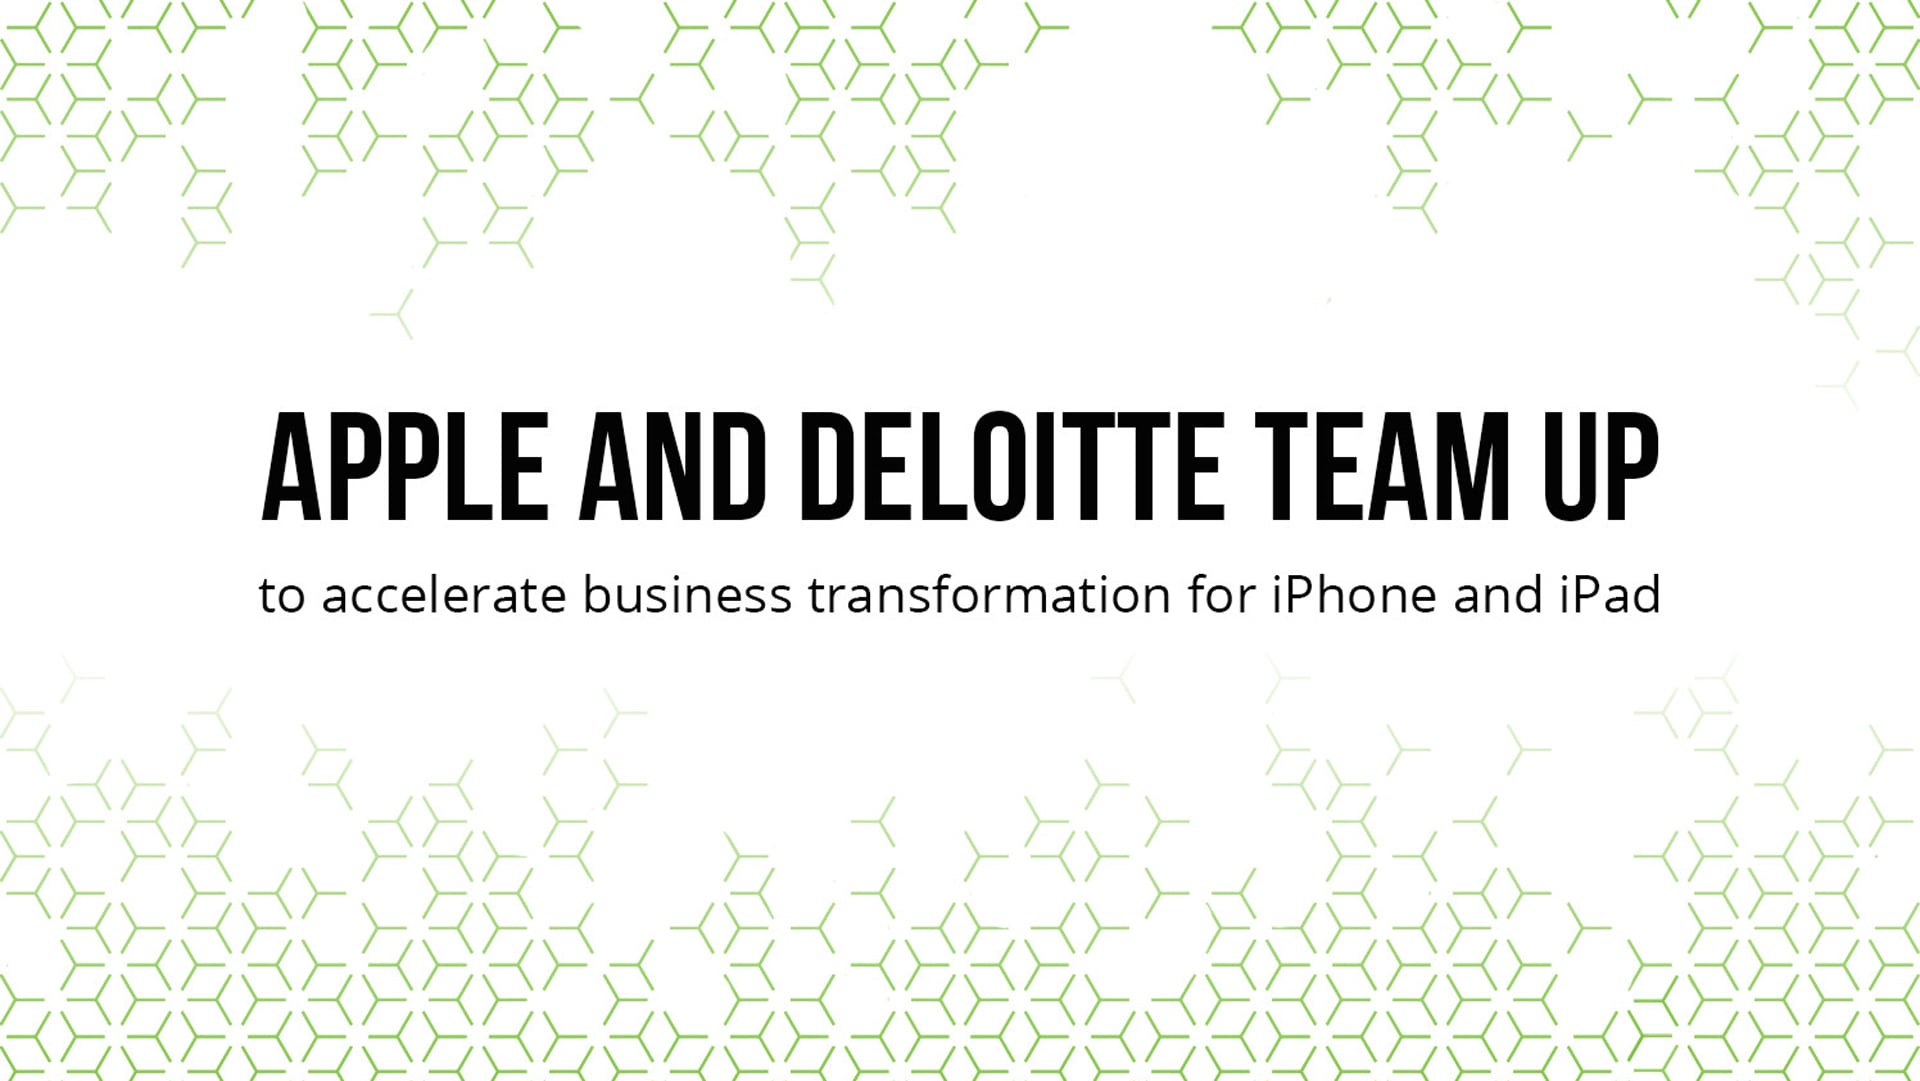 Apple and Deloitte team up text with pattern in the background